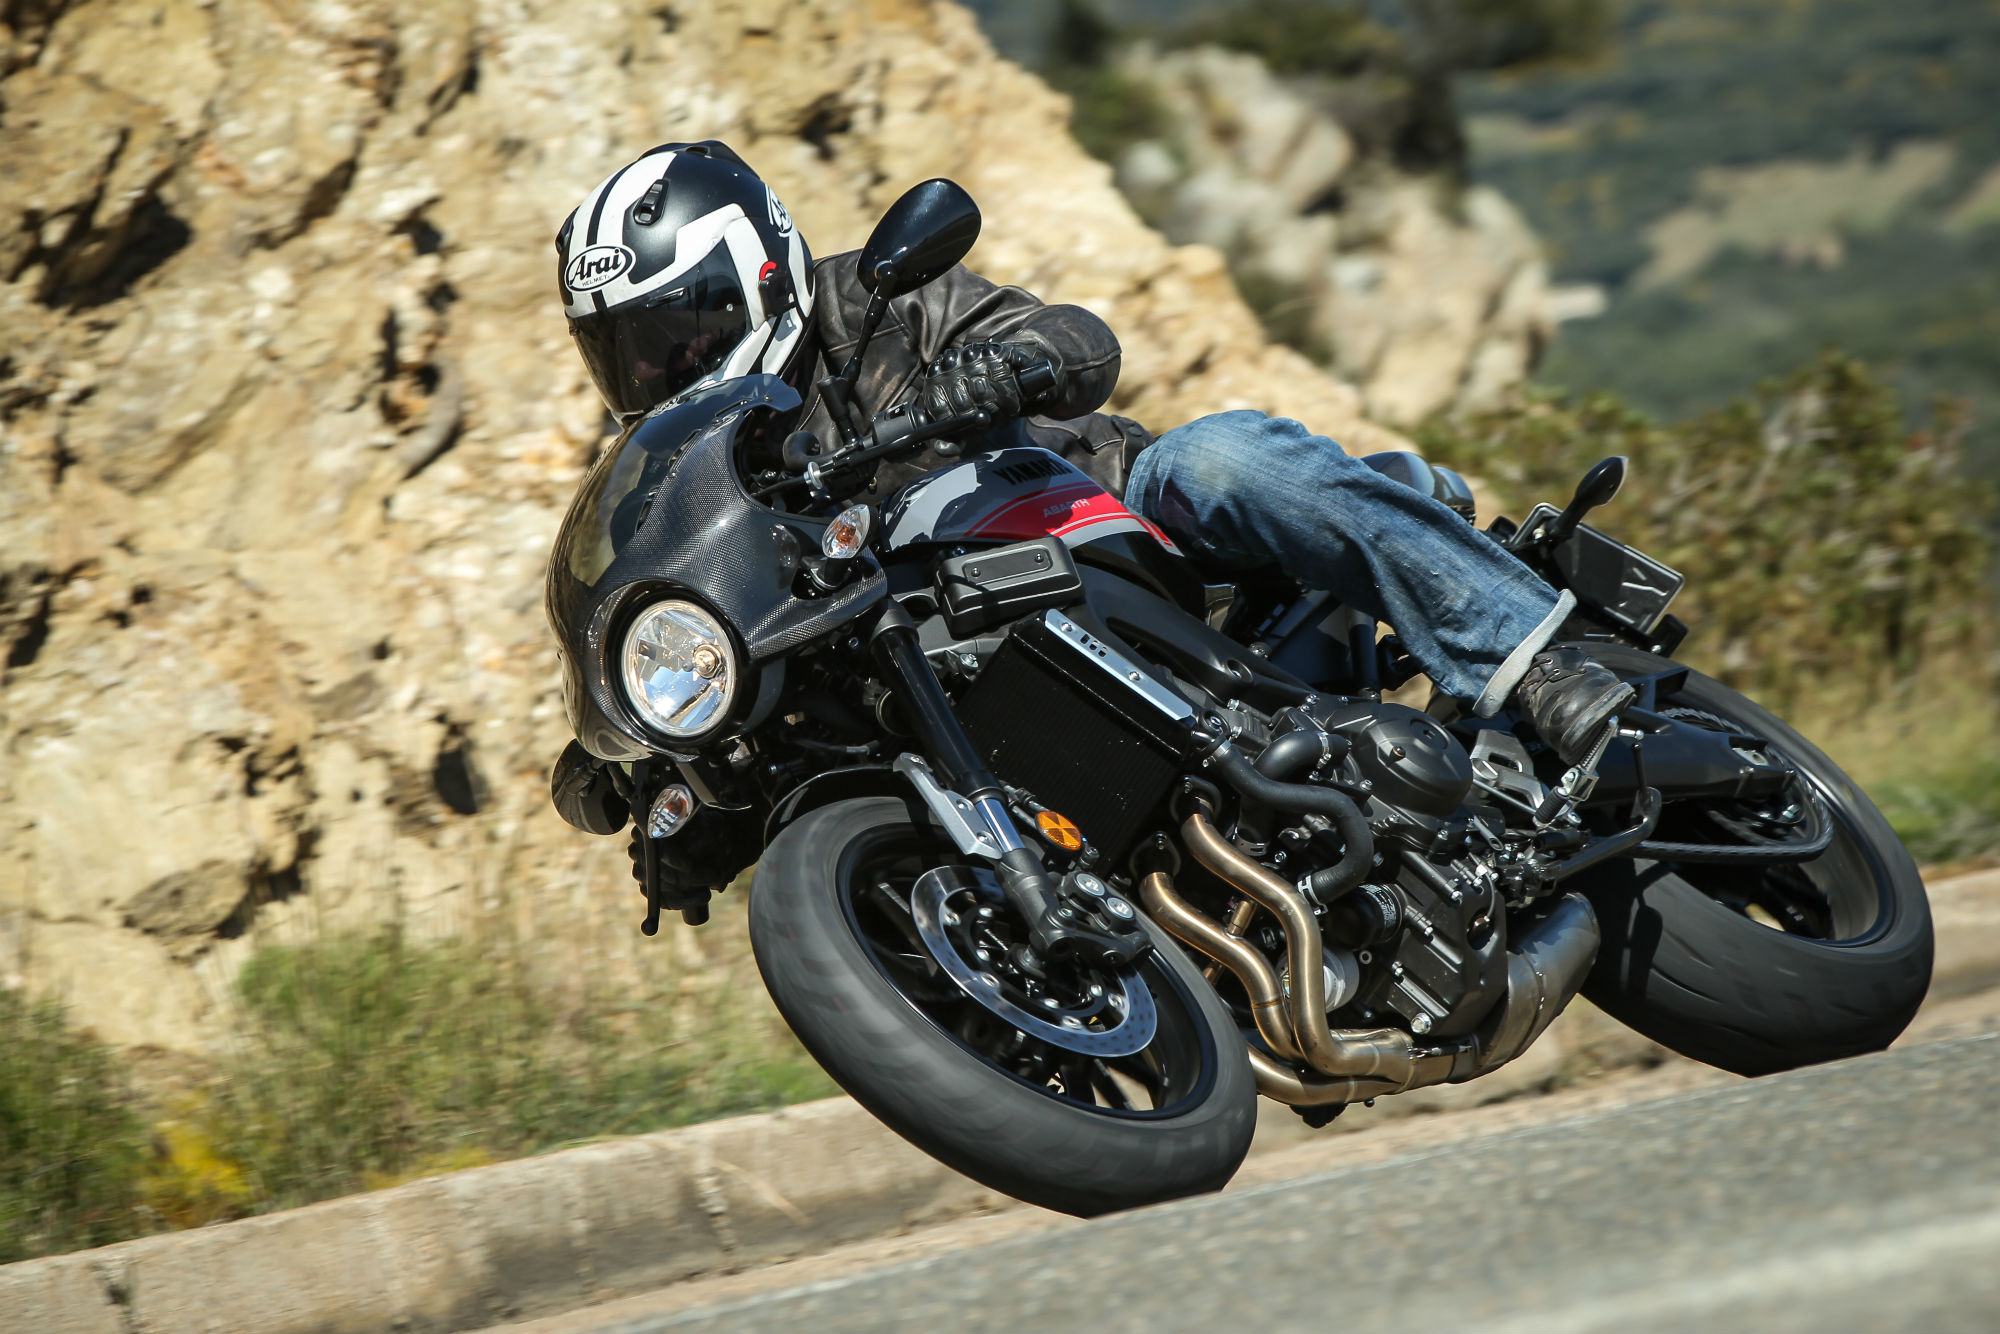 What do you think of the special edition Yamaha MT-09 SP